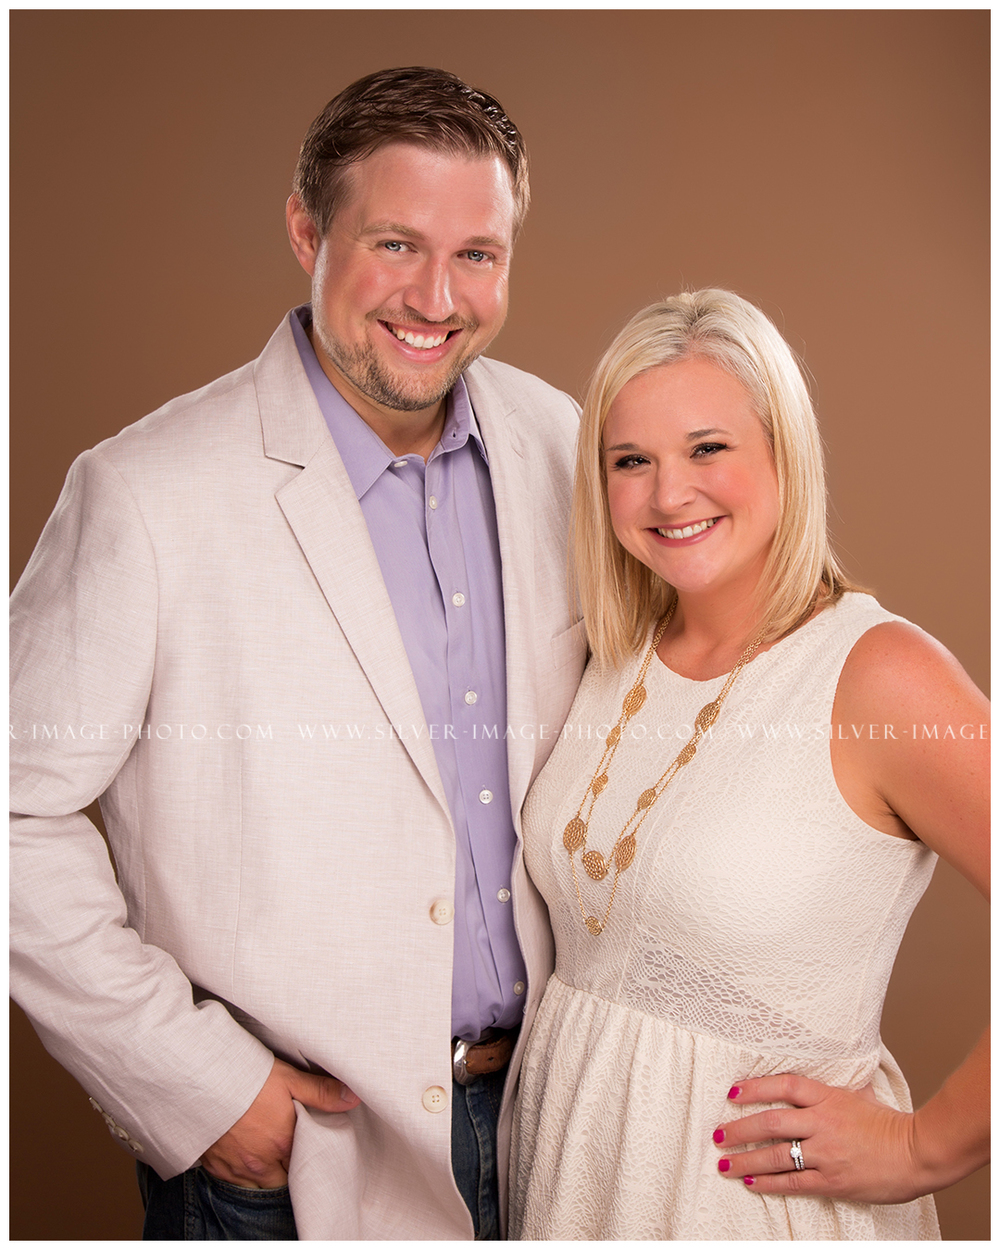 Joe and Koren Greco, Woodhouse Day Spa Owners | Photo: Silver Image Photography